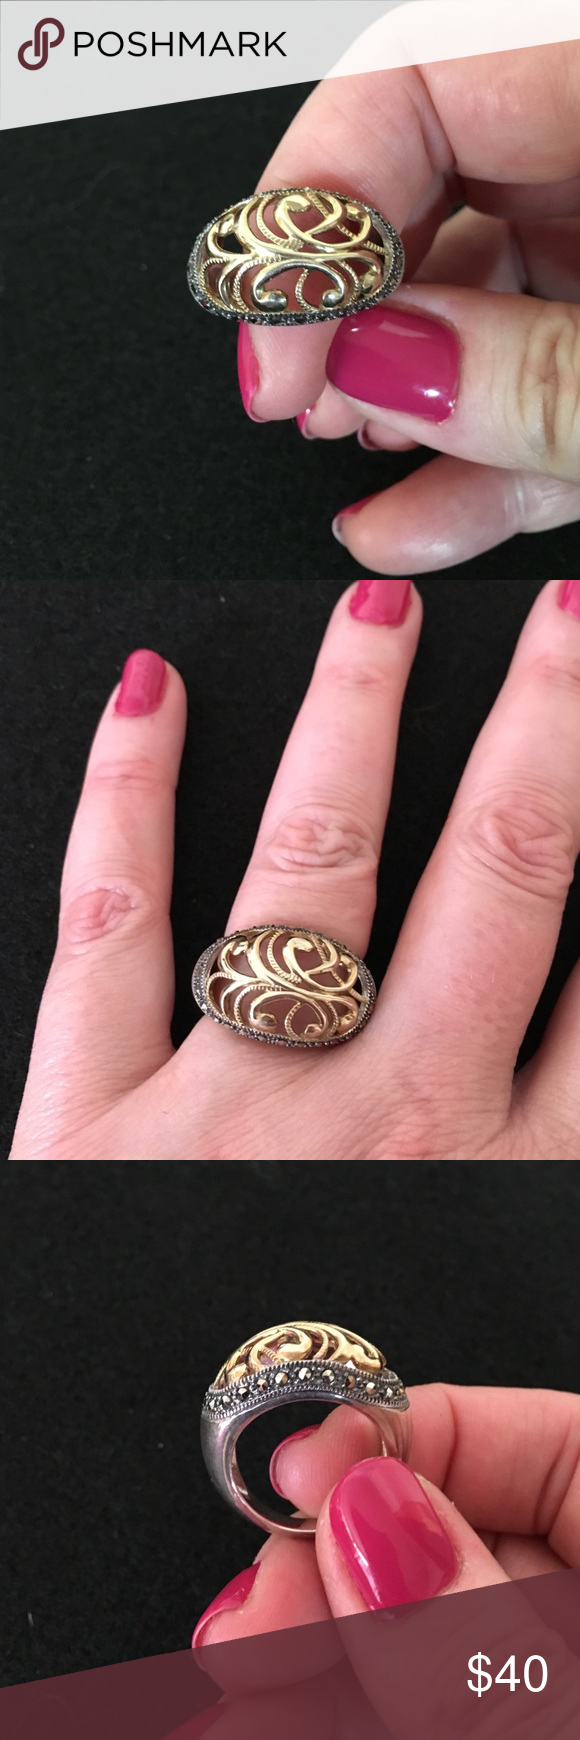 Judith Jack fashion 2-tone ring. NWT | Judith jack, Gold filigree ...